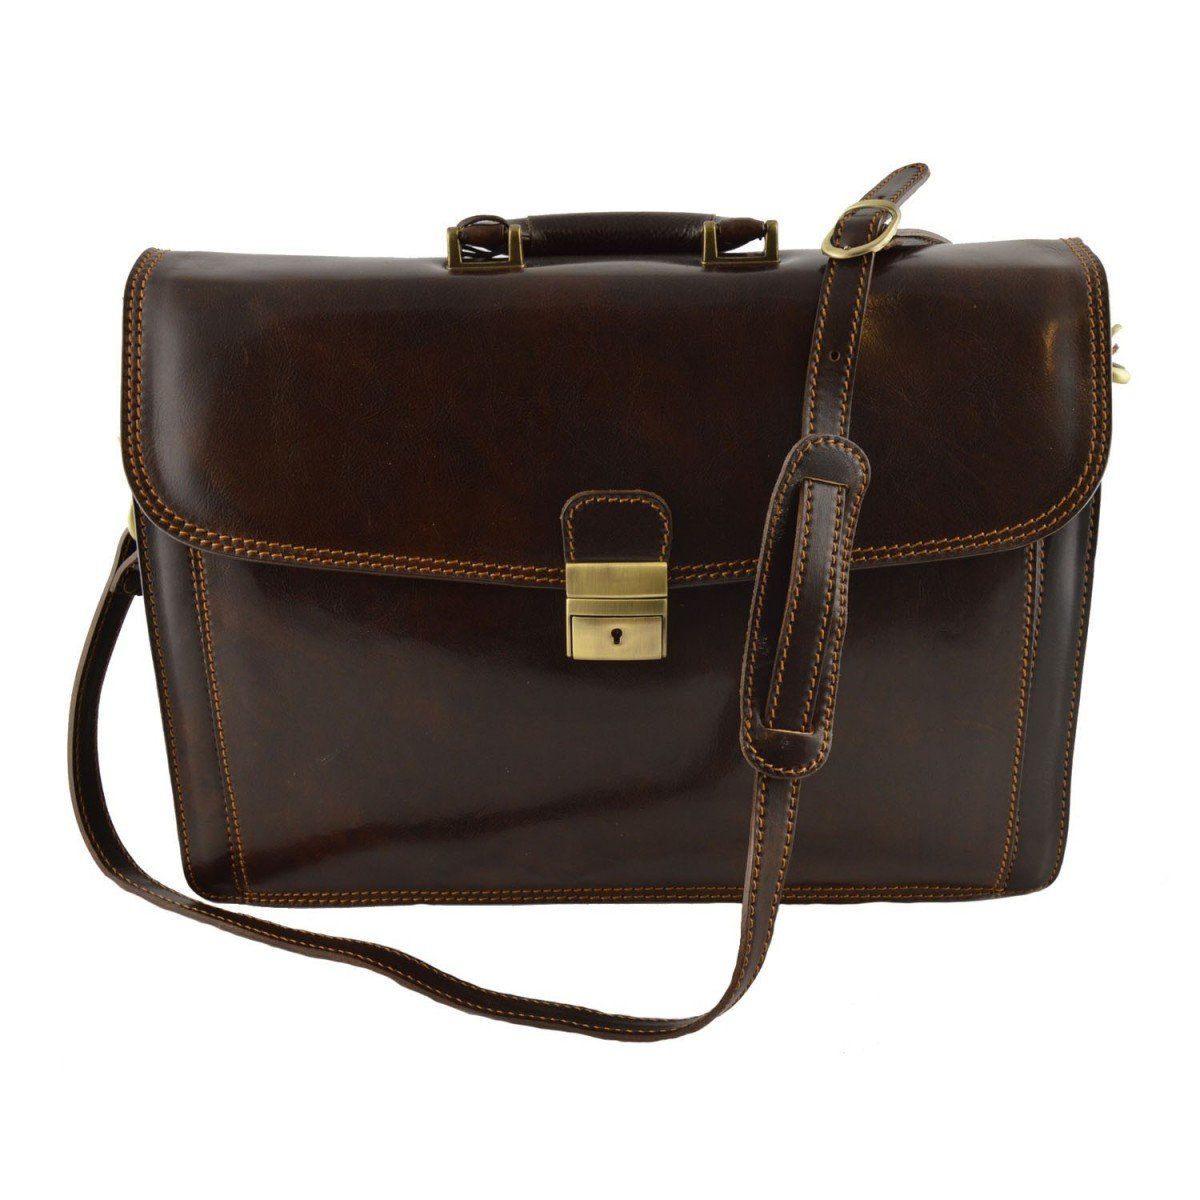 Made In Italy Leather Briefcase Color Dark Brown - Business Bag   B014T6HM3S